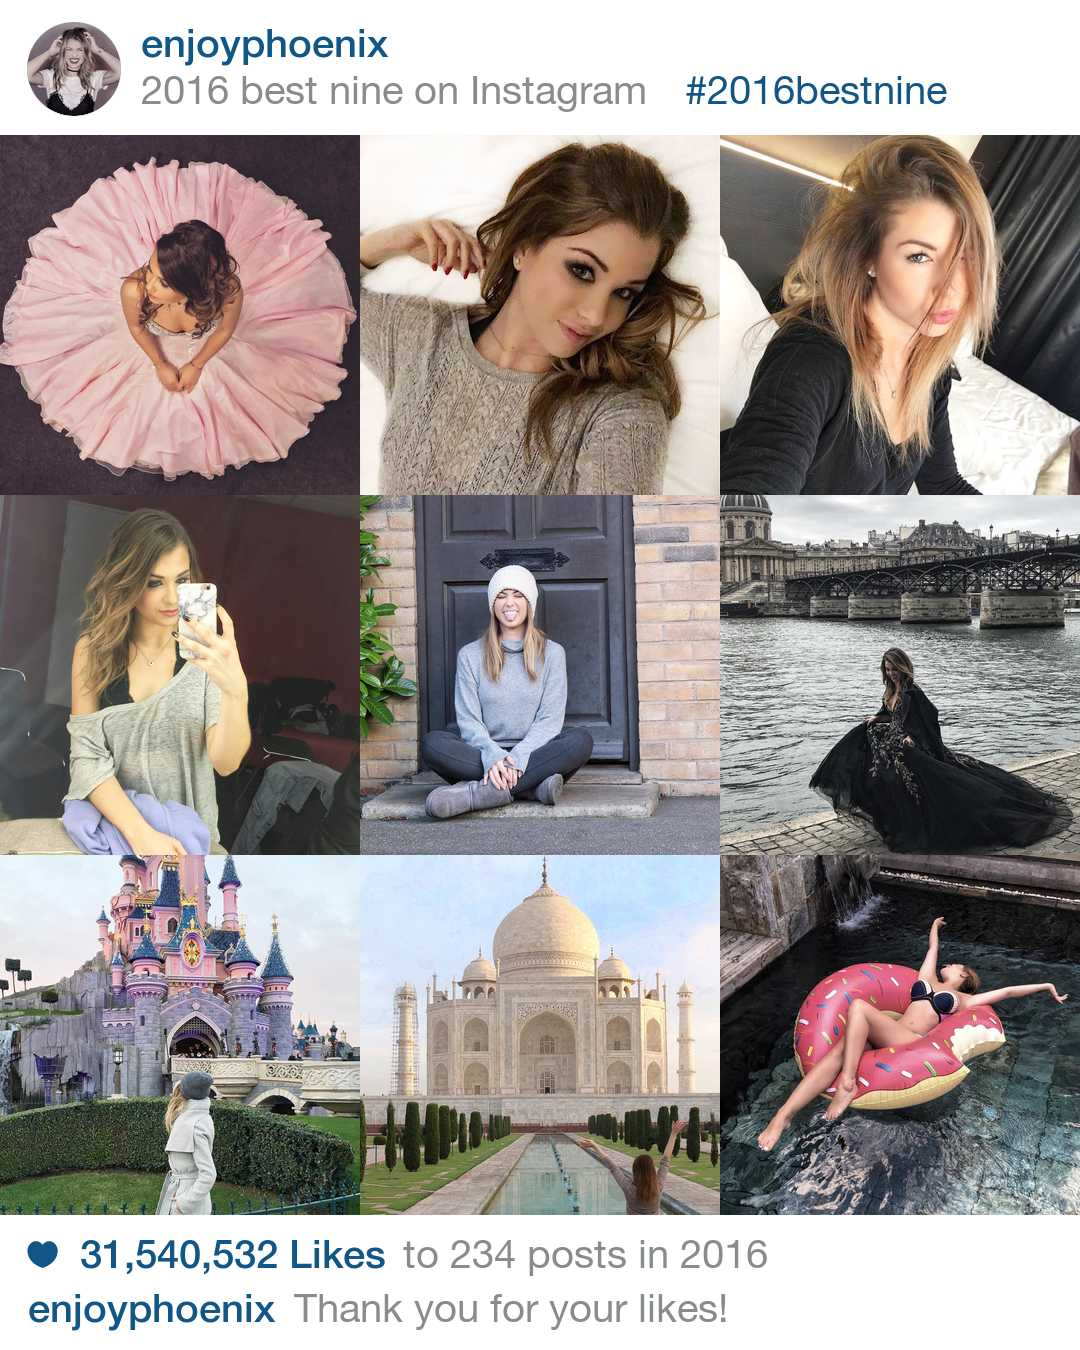 enjoyphoenix_full